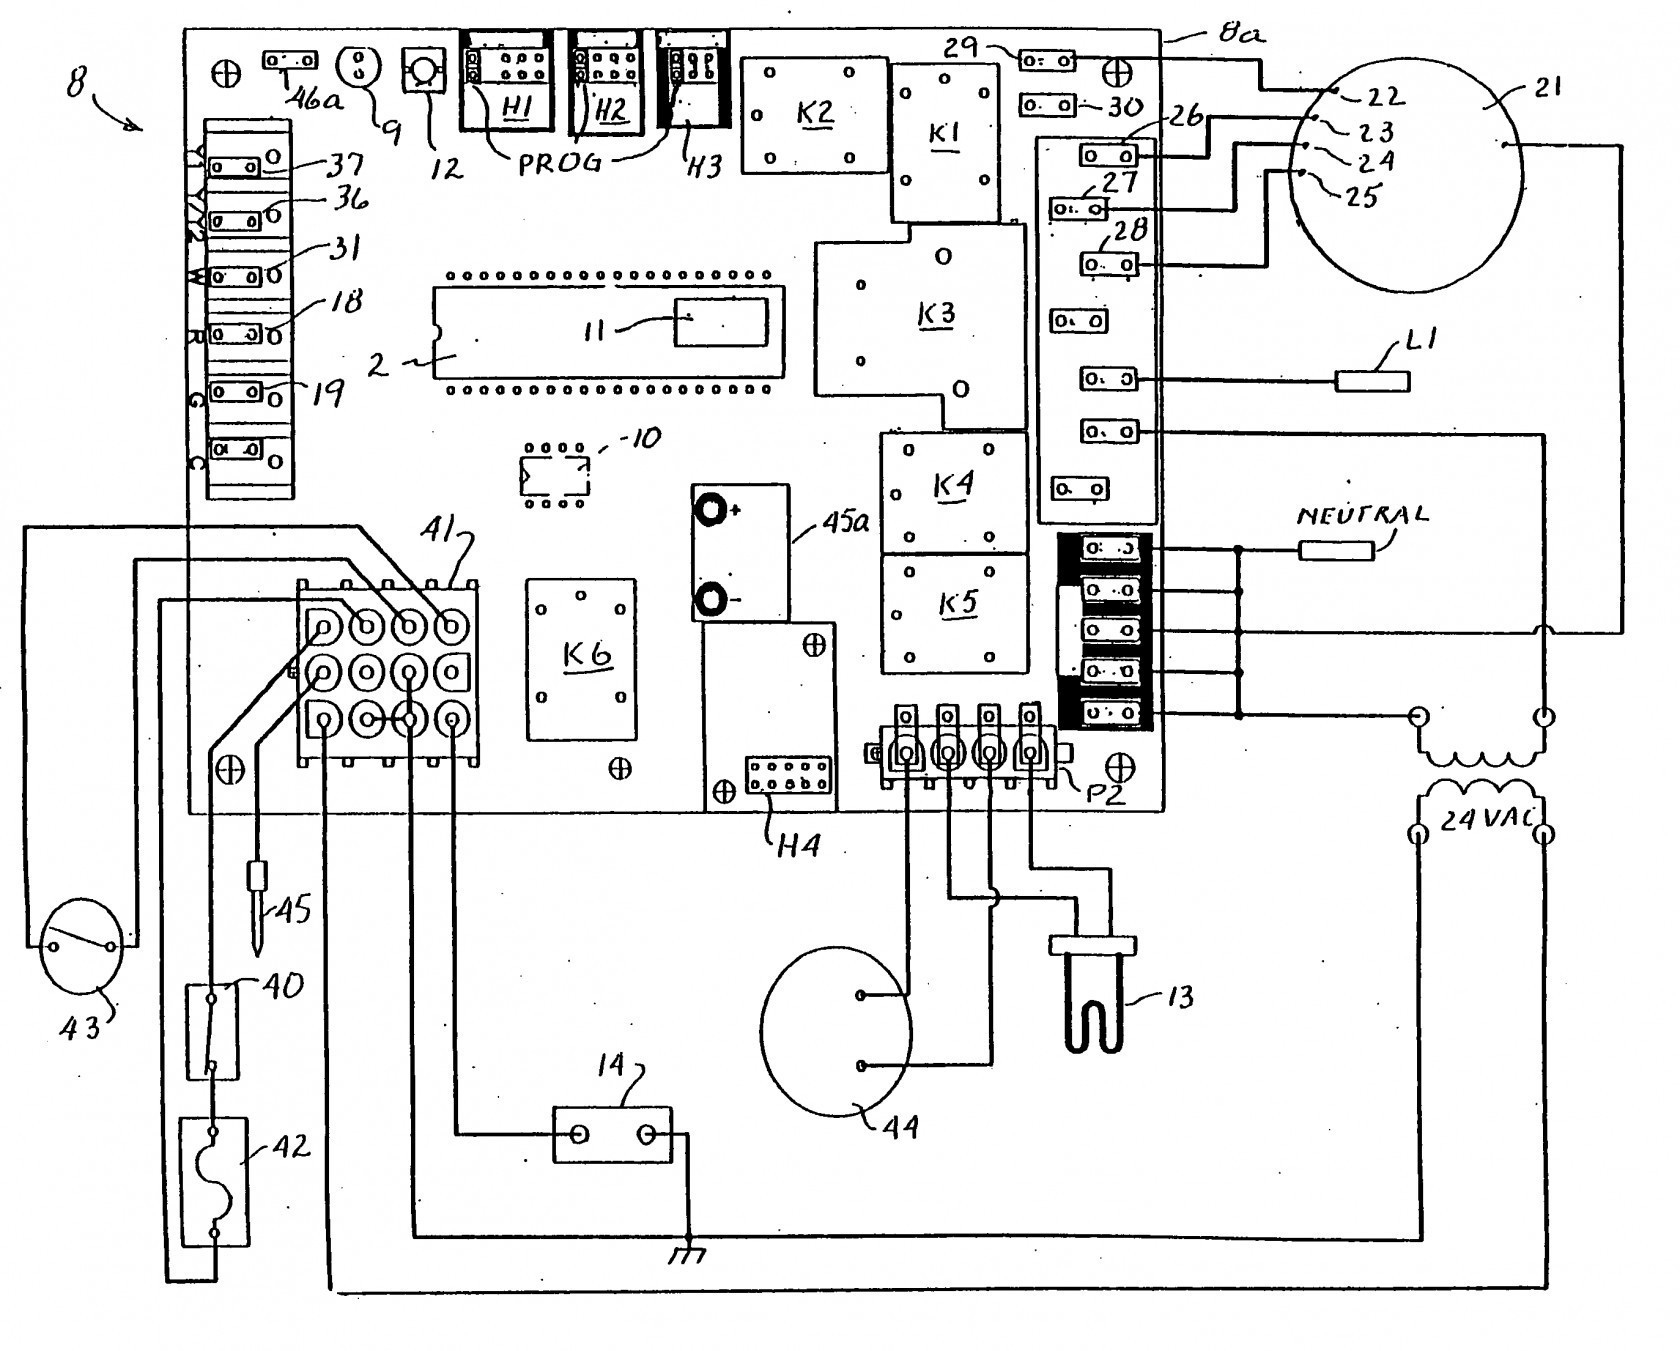 gas furnace wiring diagram pdf Download-Wiring Diagram for A Gas Furnace Valid Gas Furnace Wiring Diagram Pdf Wiring Diagram 15-o